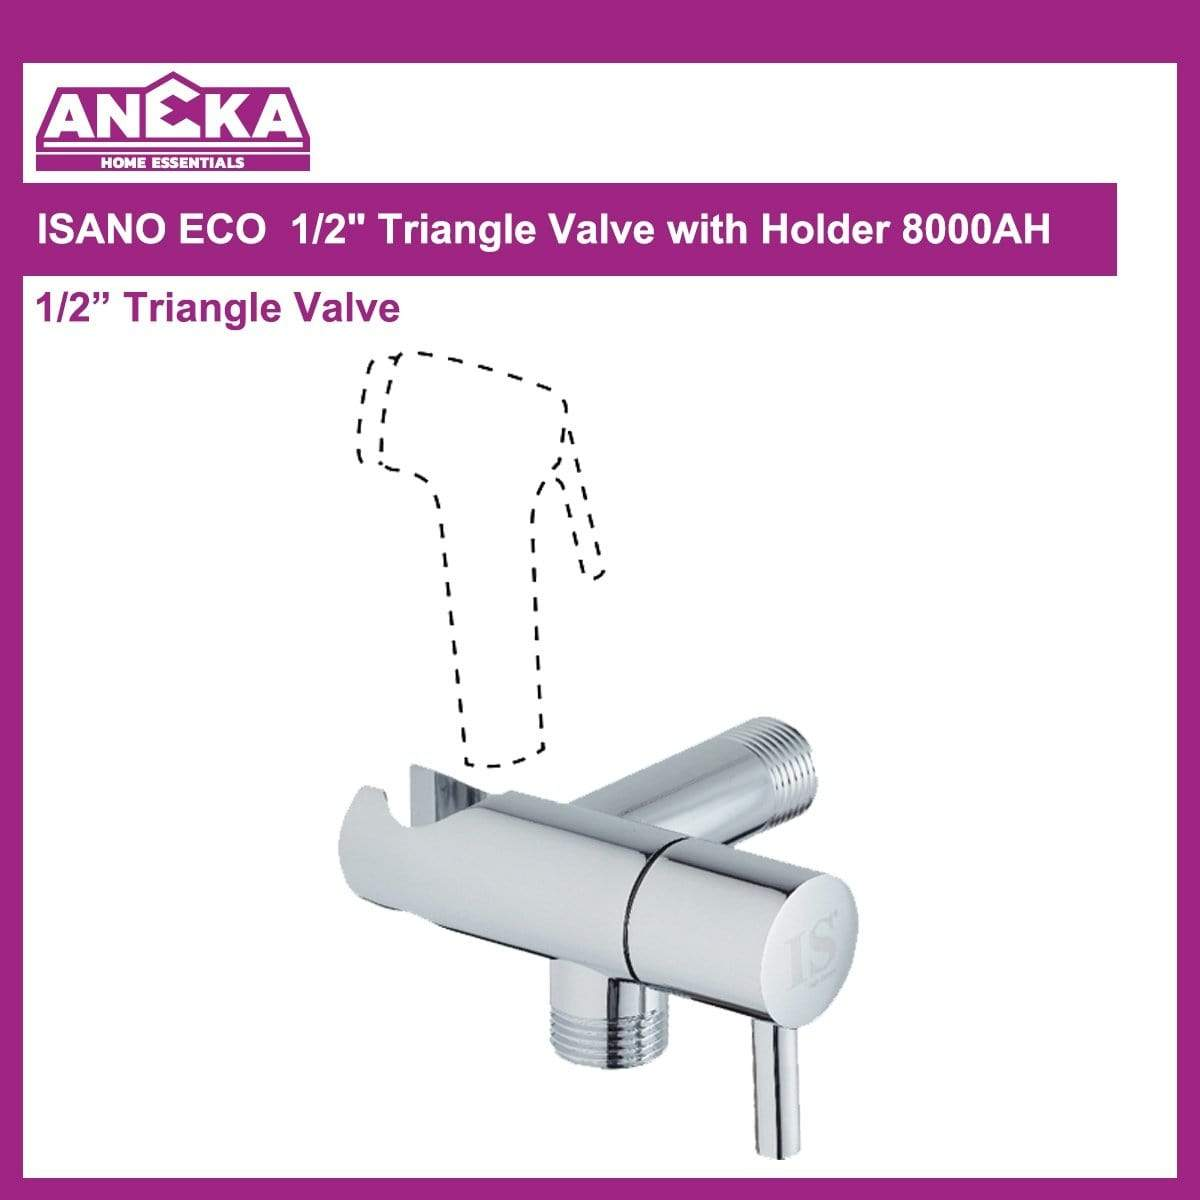 "ISANO ECO 1/2"" Triangle Valve w/Holder 8000AH"